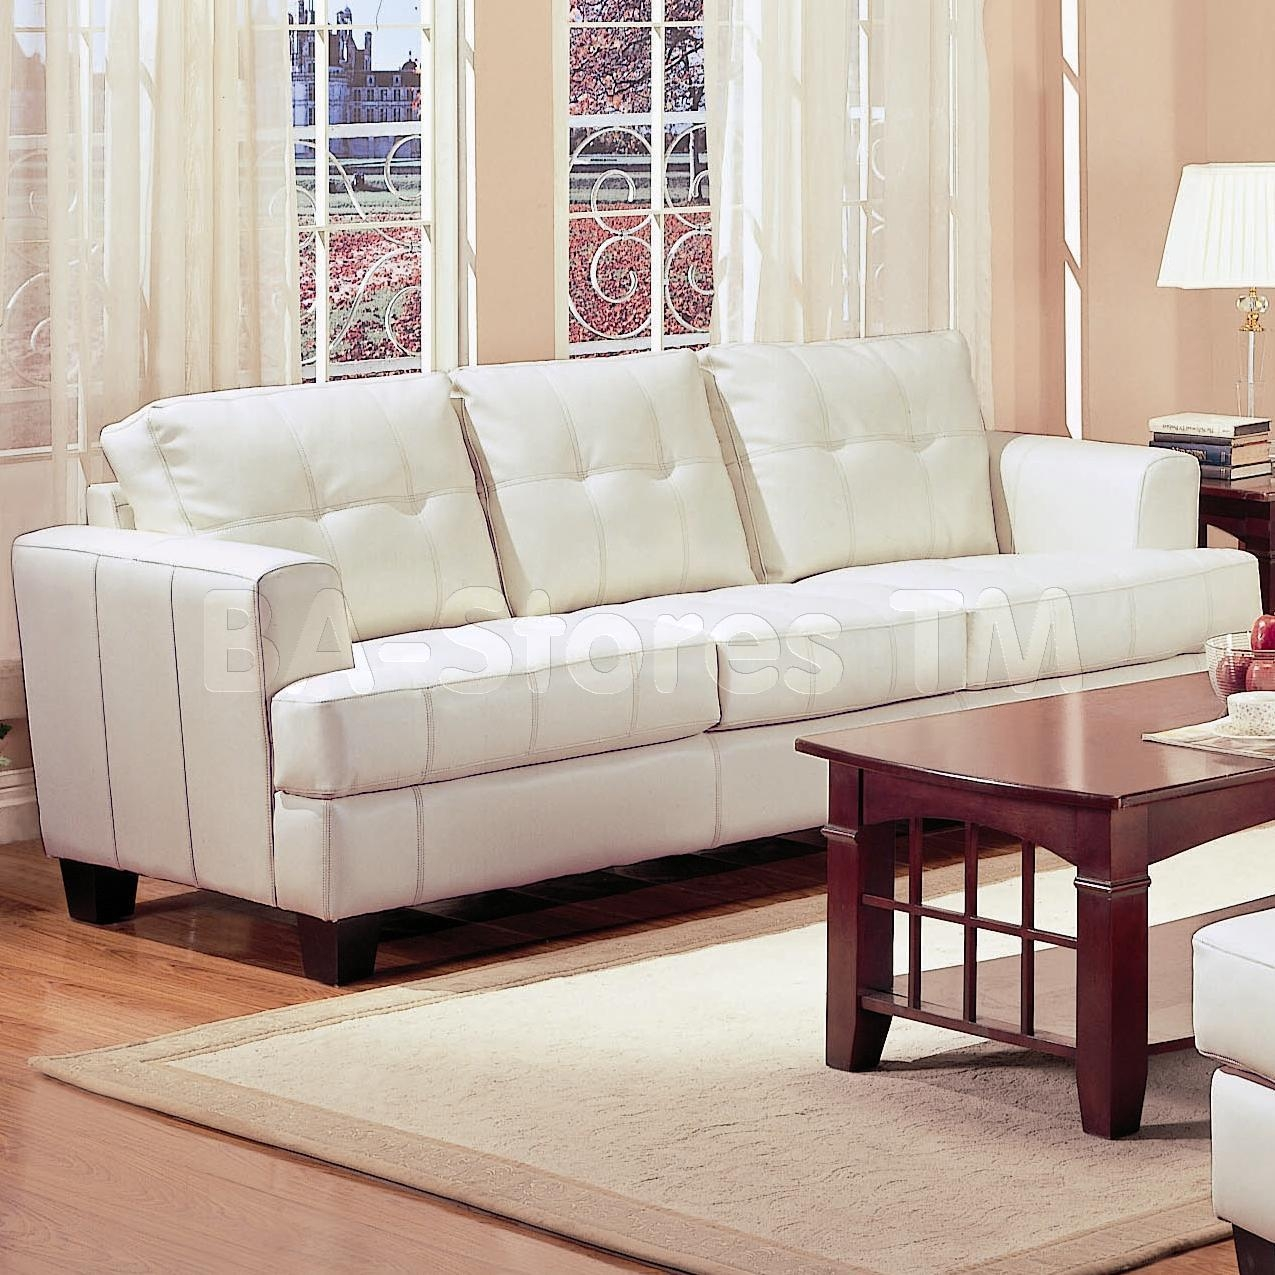 Samuel Contemporary Leather Sofa In White – Coaster Co (Image 12 of 20)